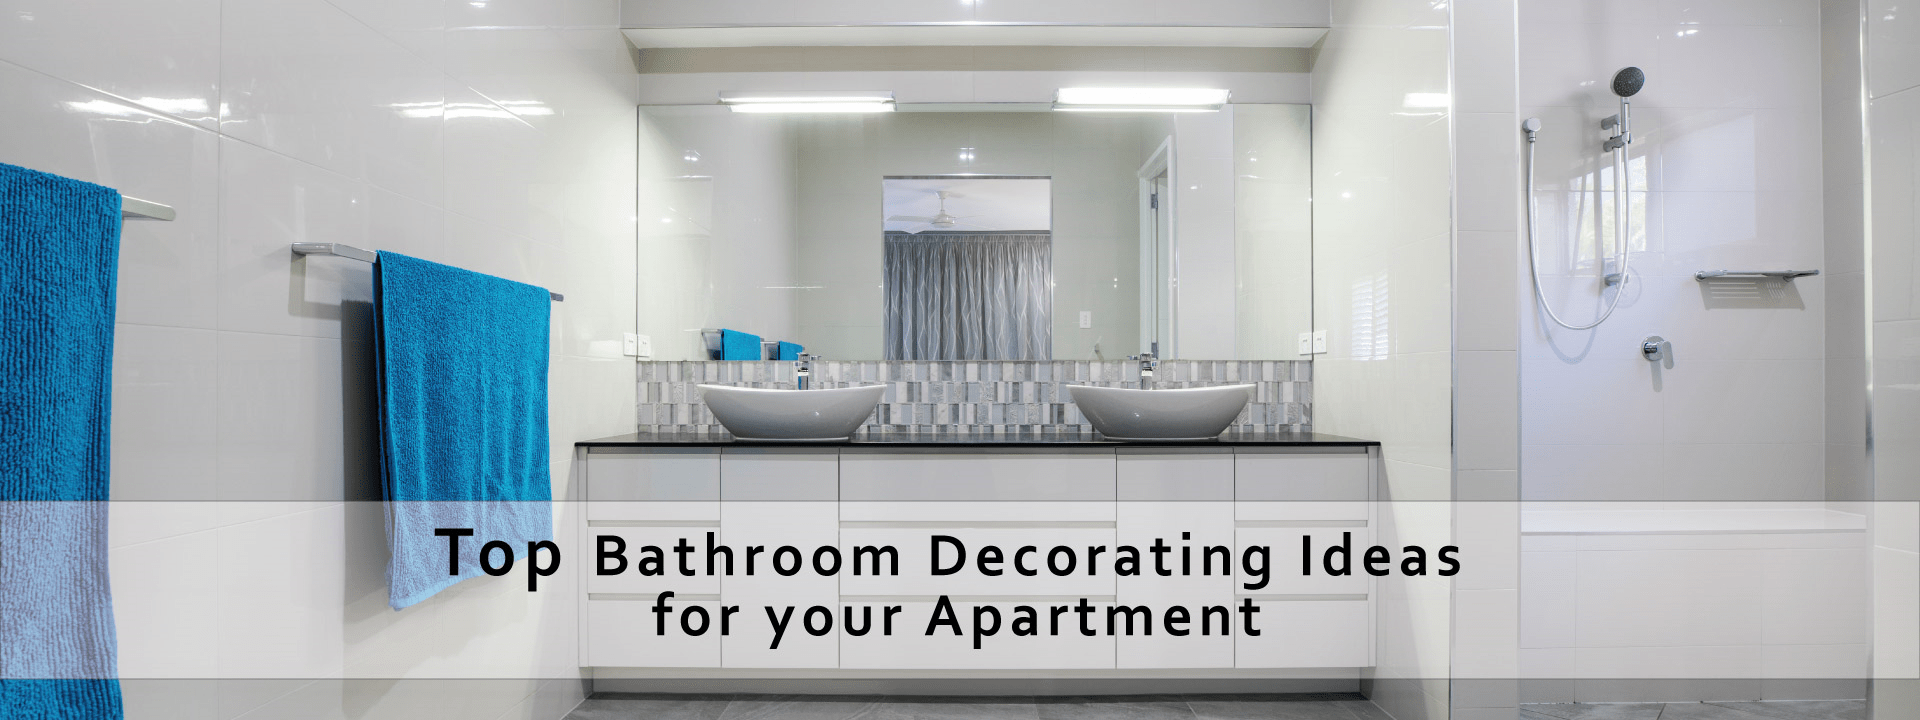 Top Bathroom Decorating Ideas for your Apartment